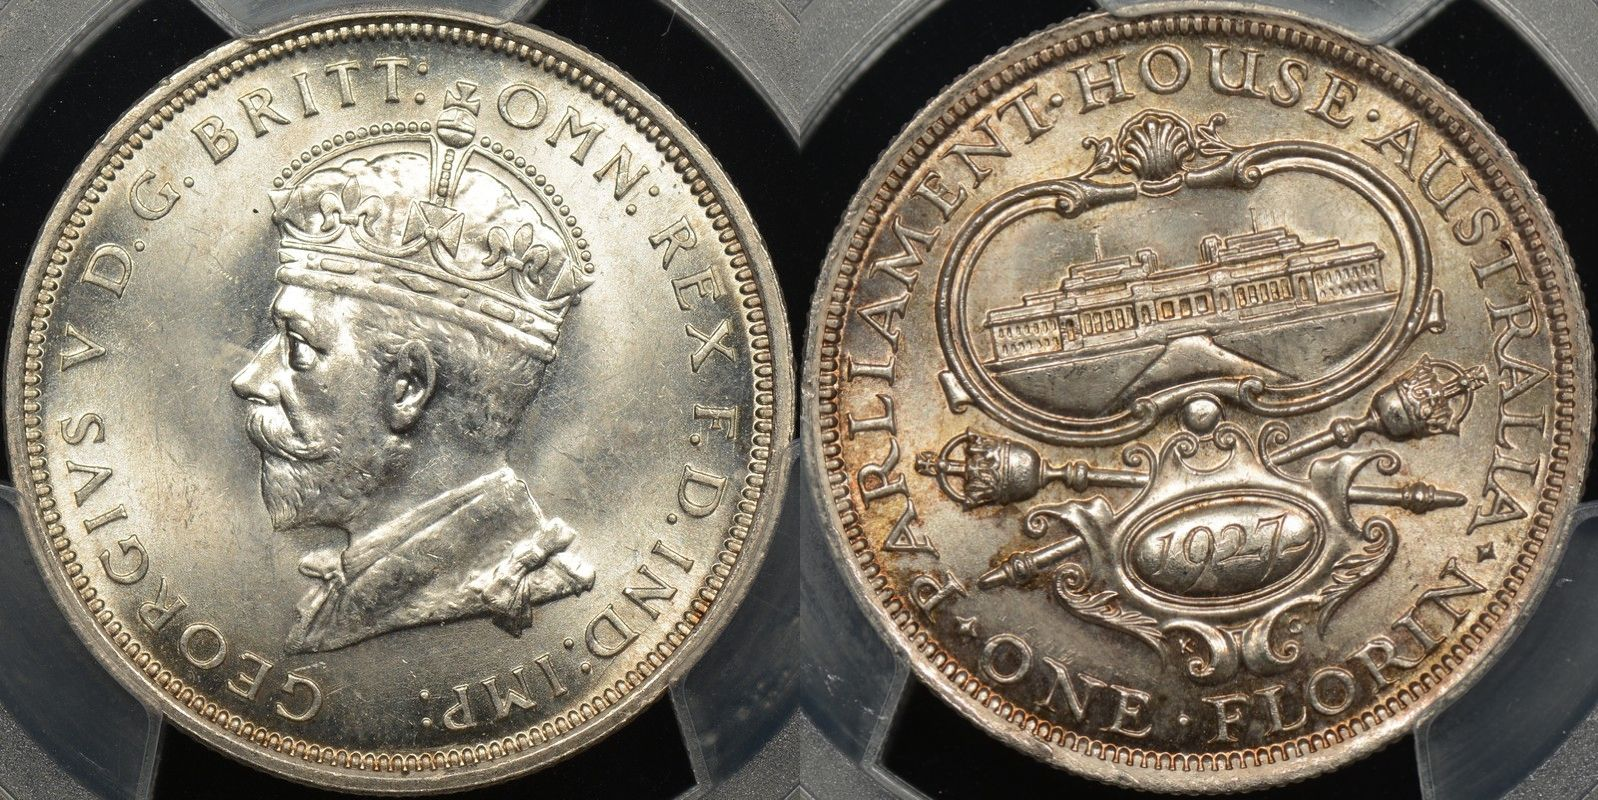 Australia 1927 parliament florin Choice Uncirculated PCGS MS63